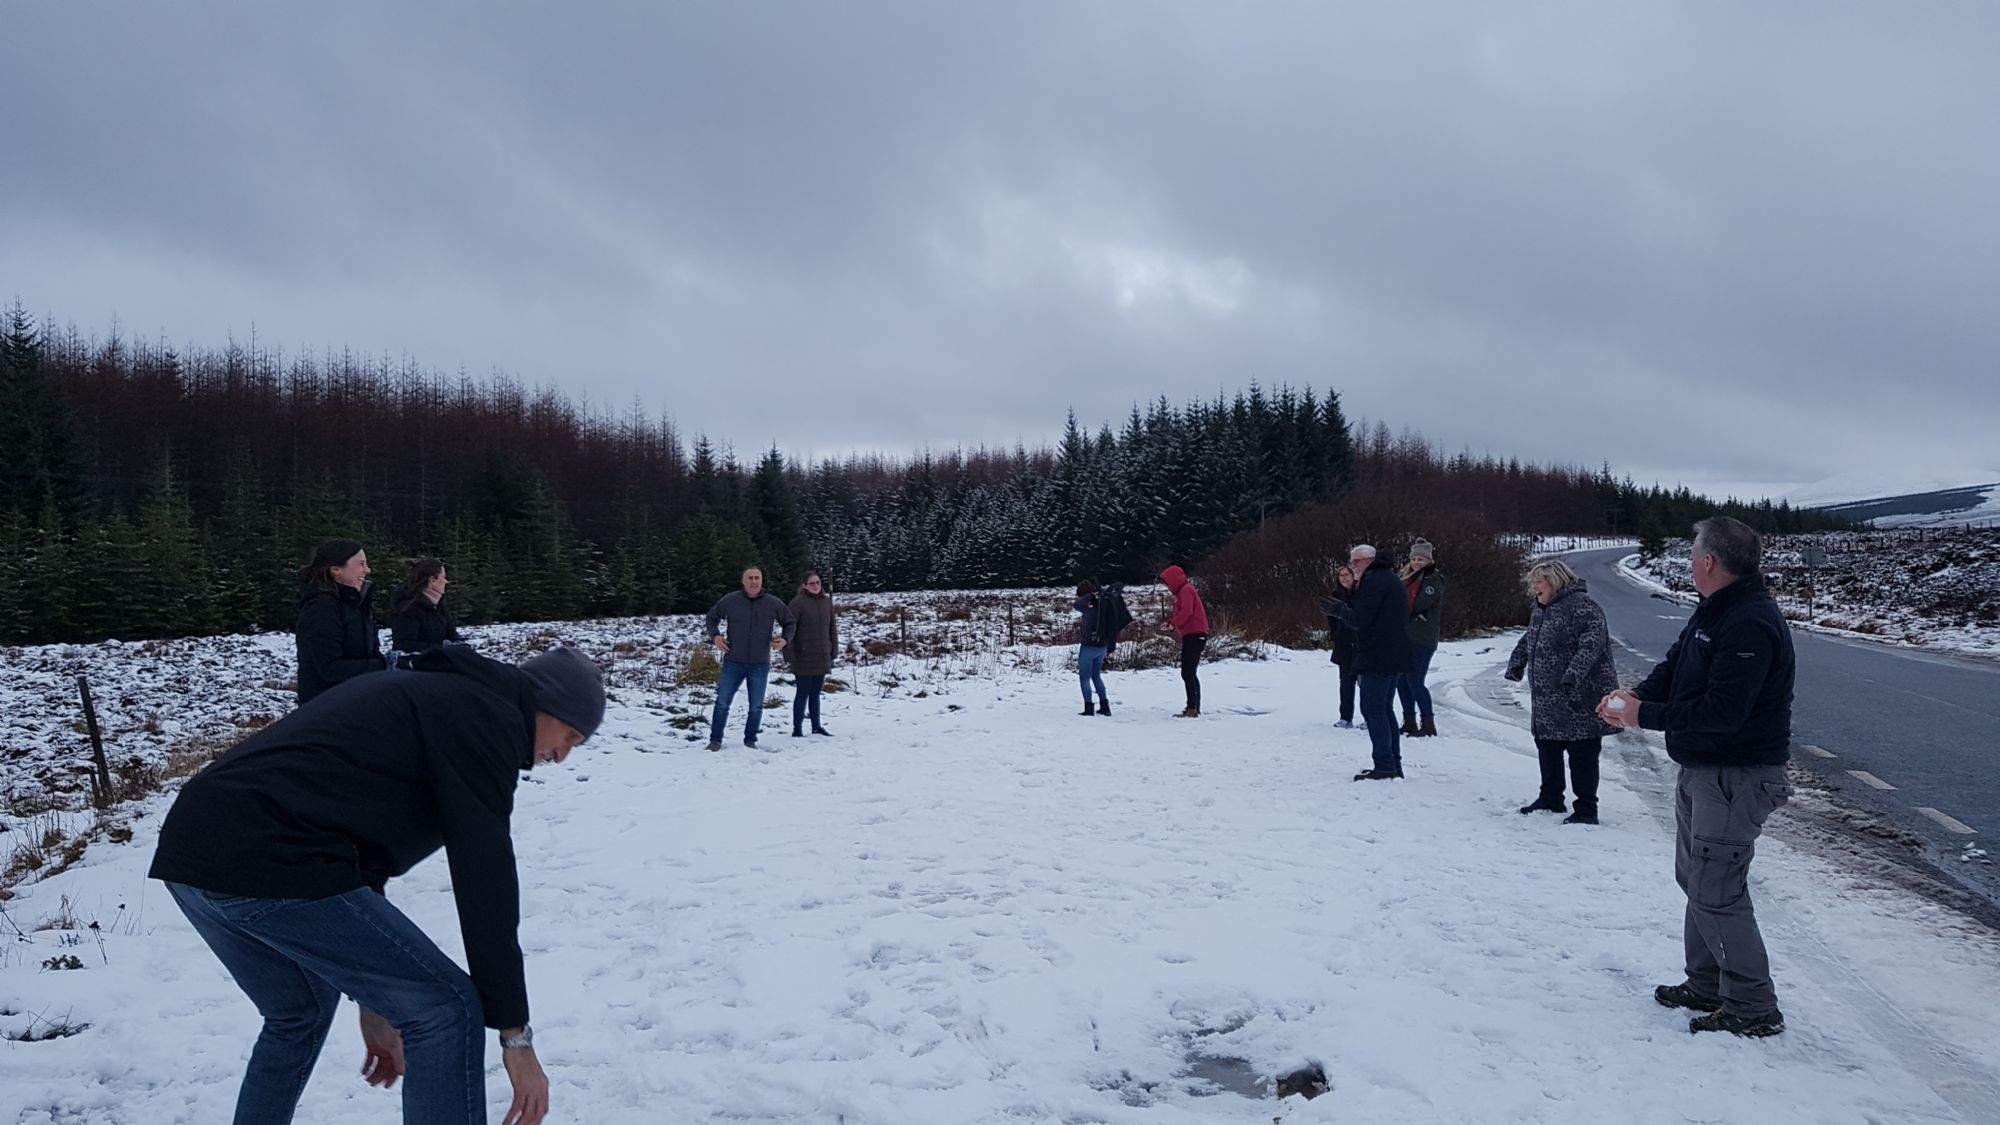 snowball fight on the way back